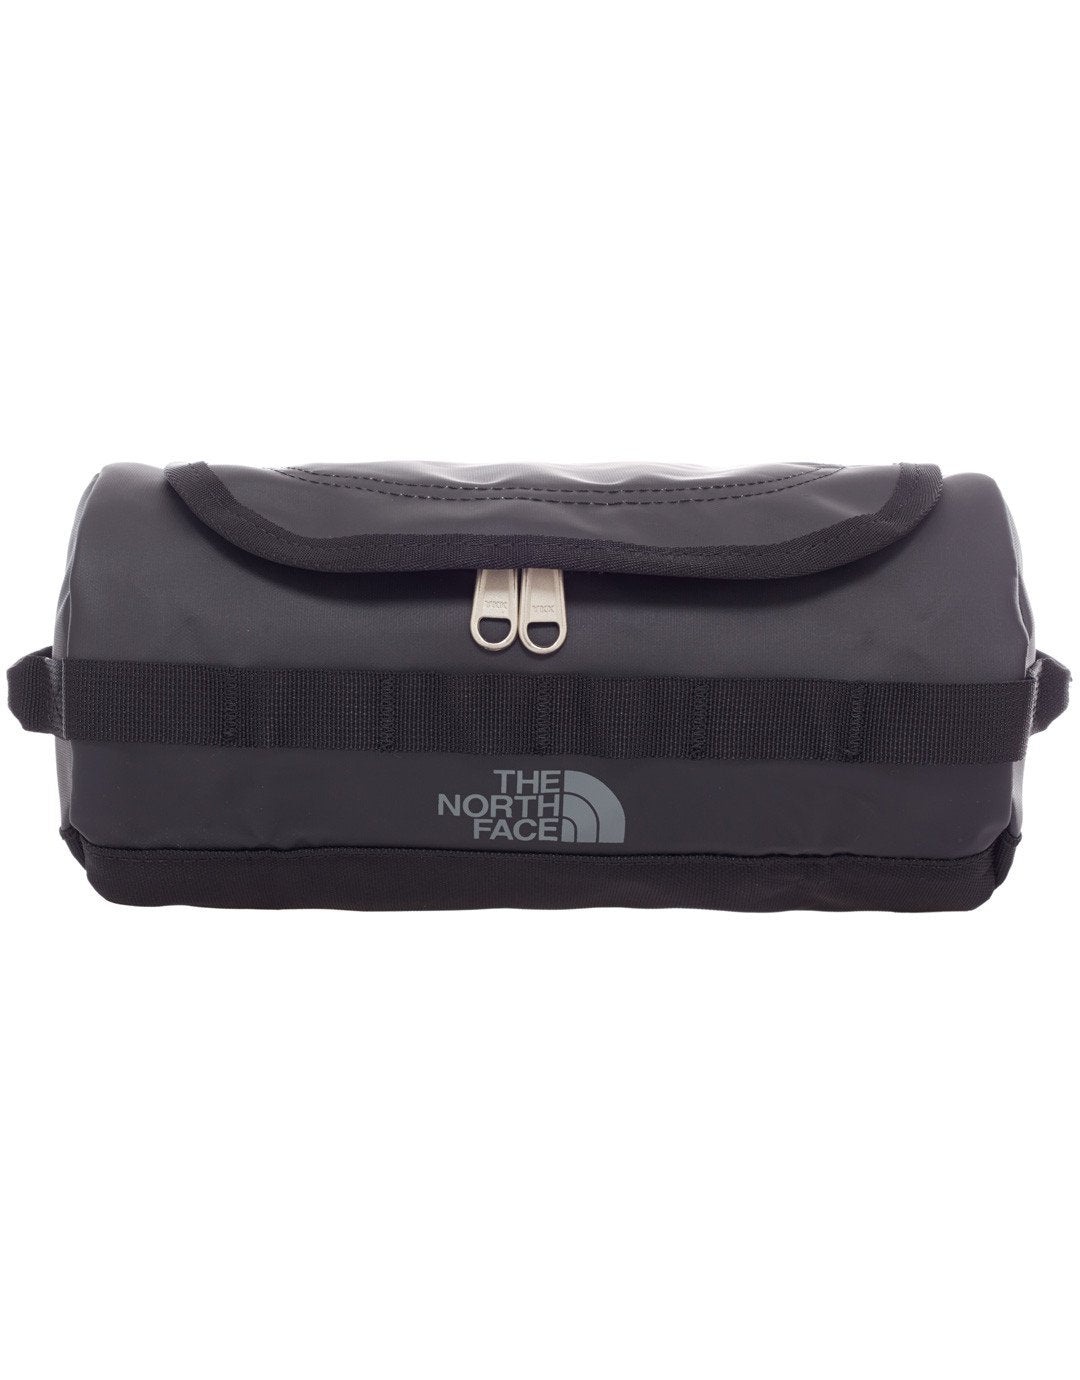 ... The North Face Base Camp Travel Canister - TNF Black ... fa4bb2061f55